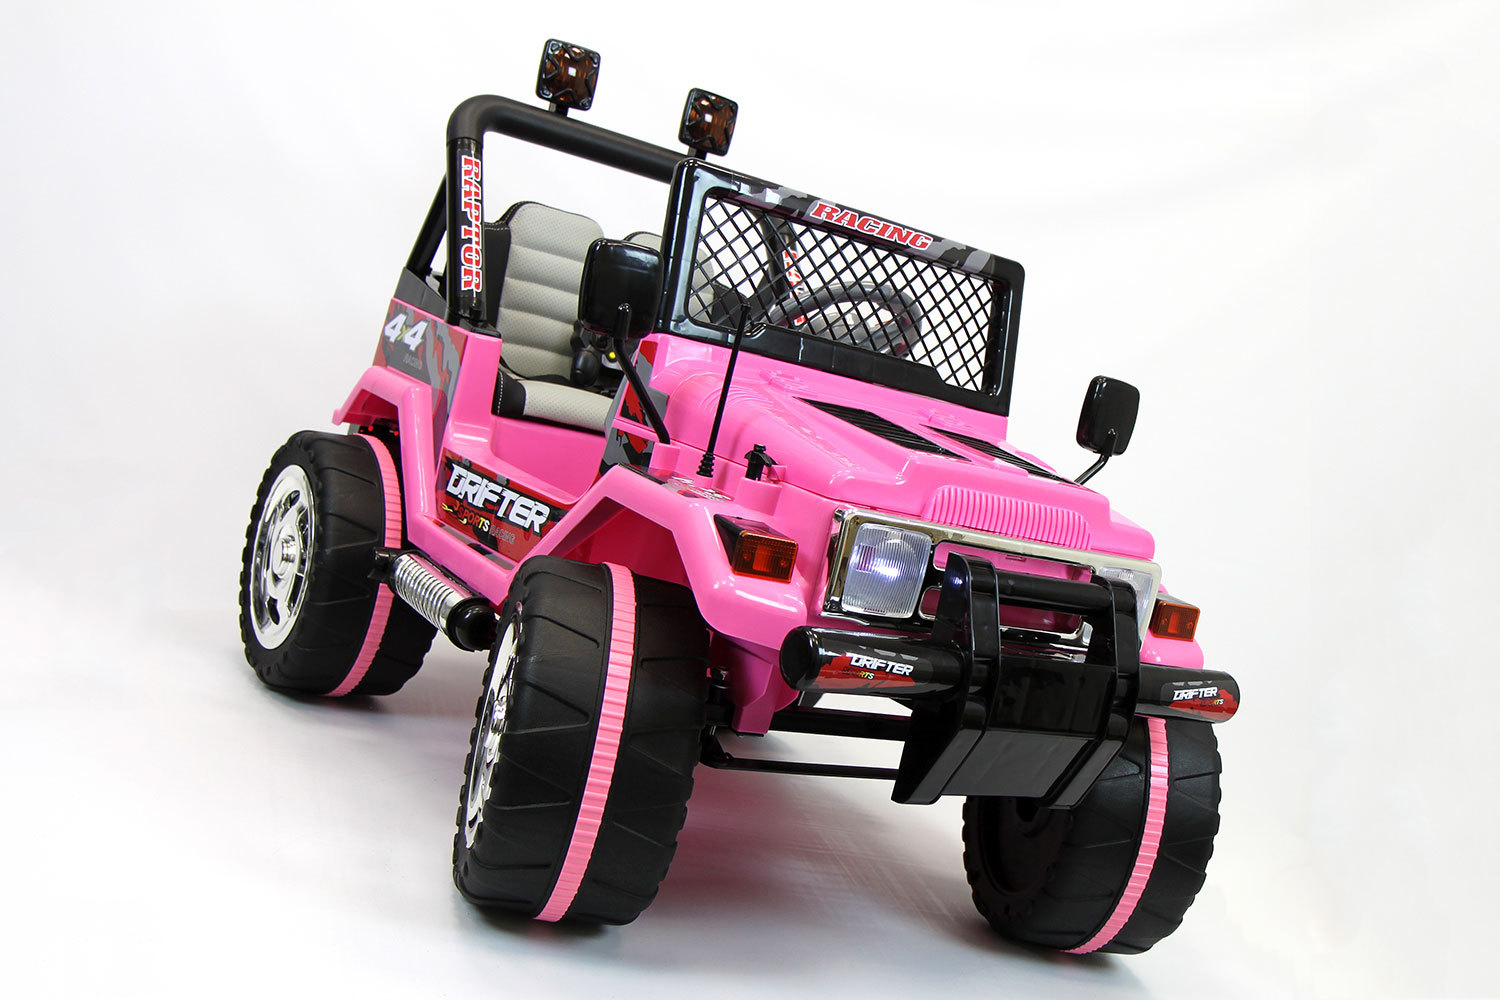 Jeep Wrangler Style 12v Kids Ride On Car Mp3 Battery Powered Wheels Rc Pink Ride On Toys